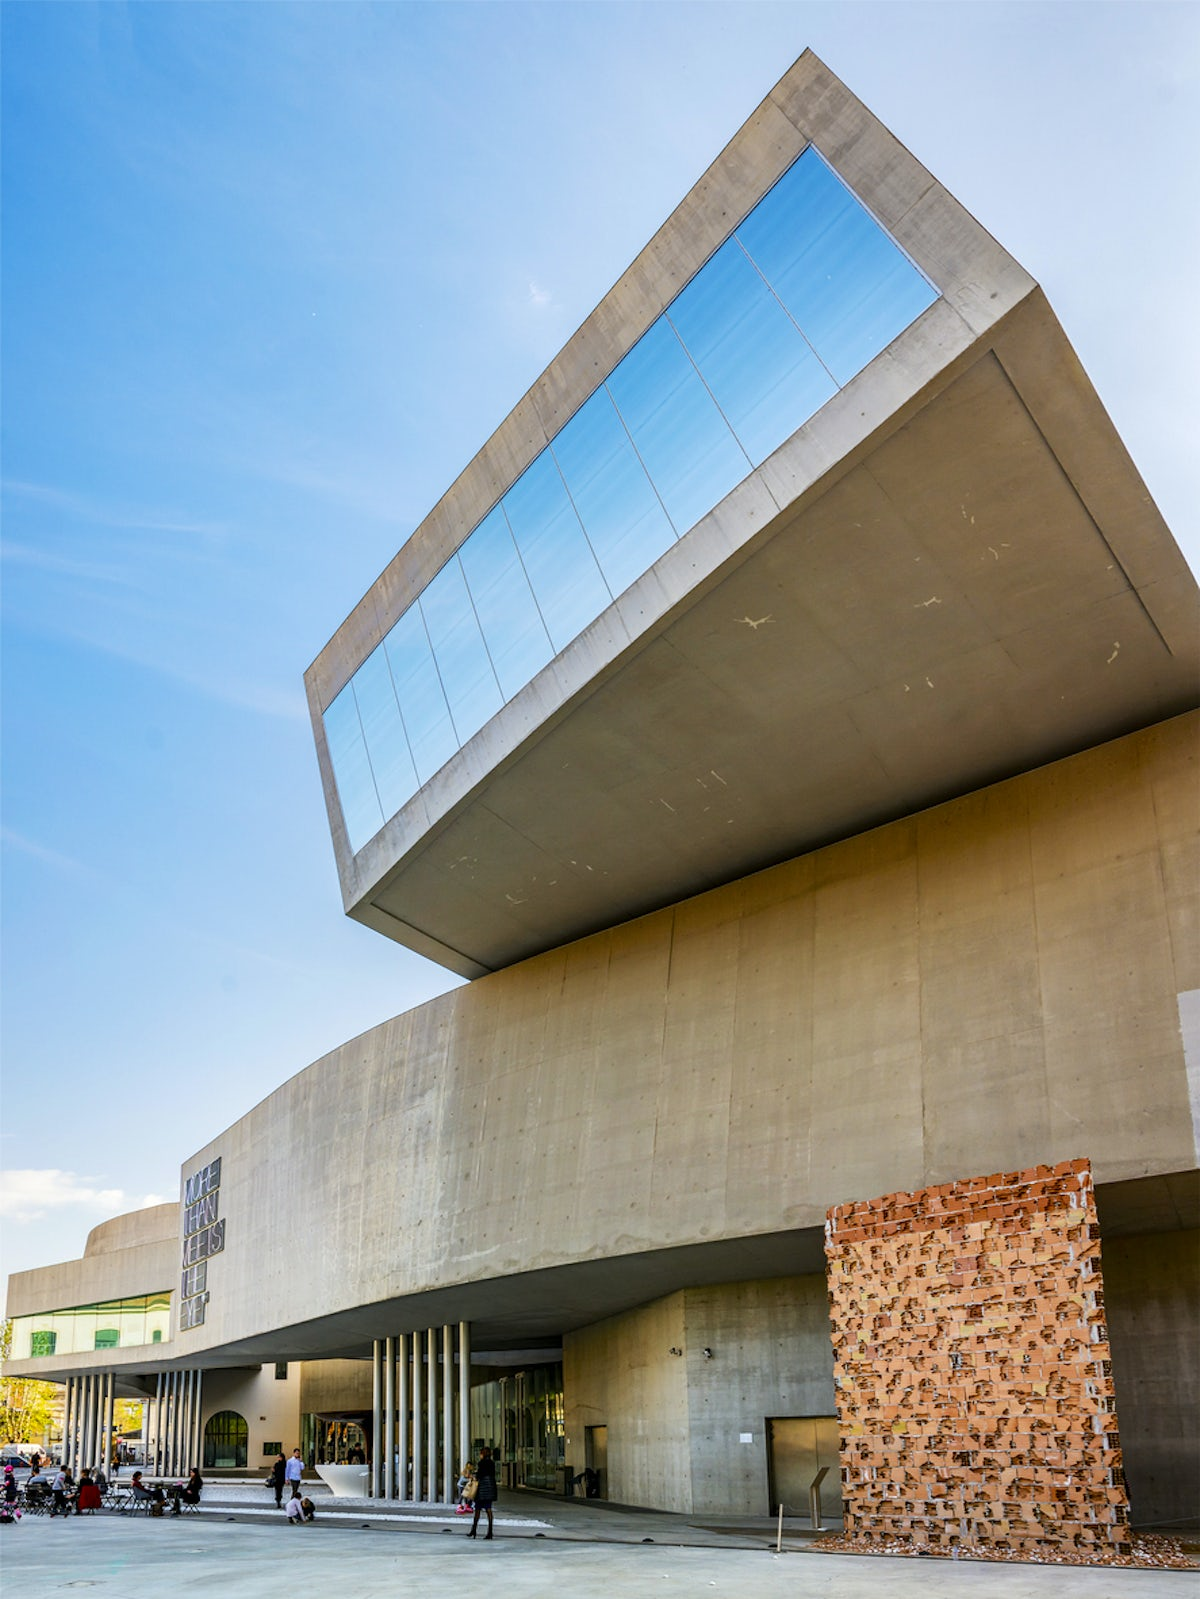 Contemporary art in Rome, the Maxxi museum